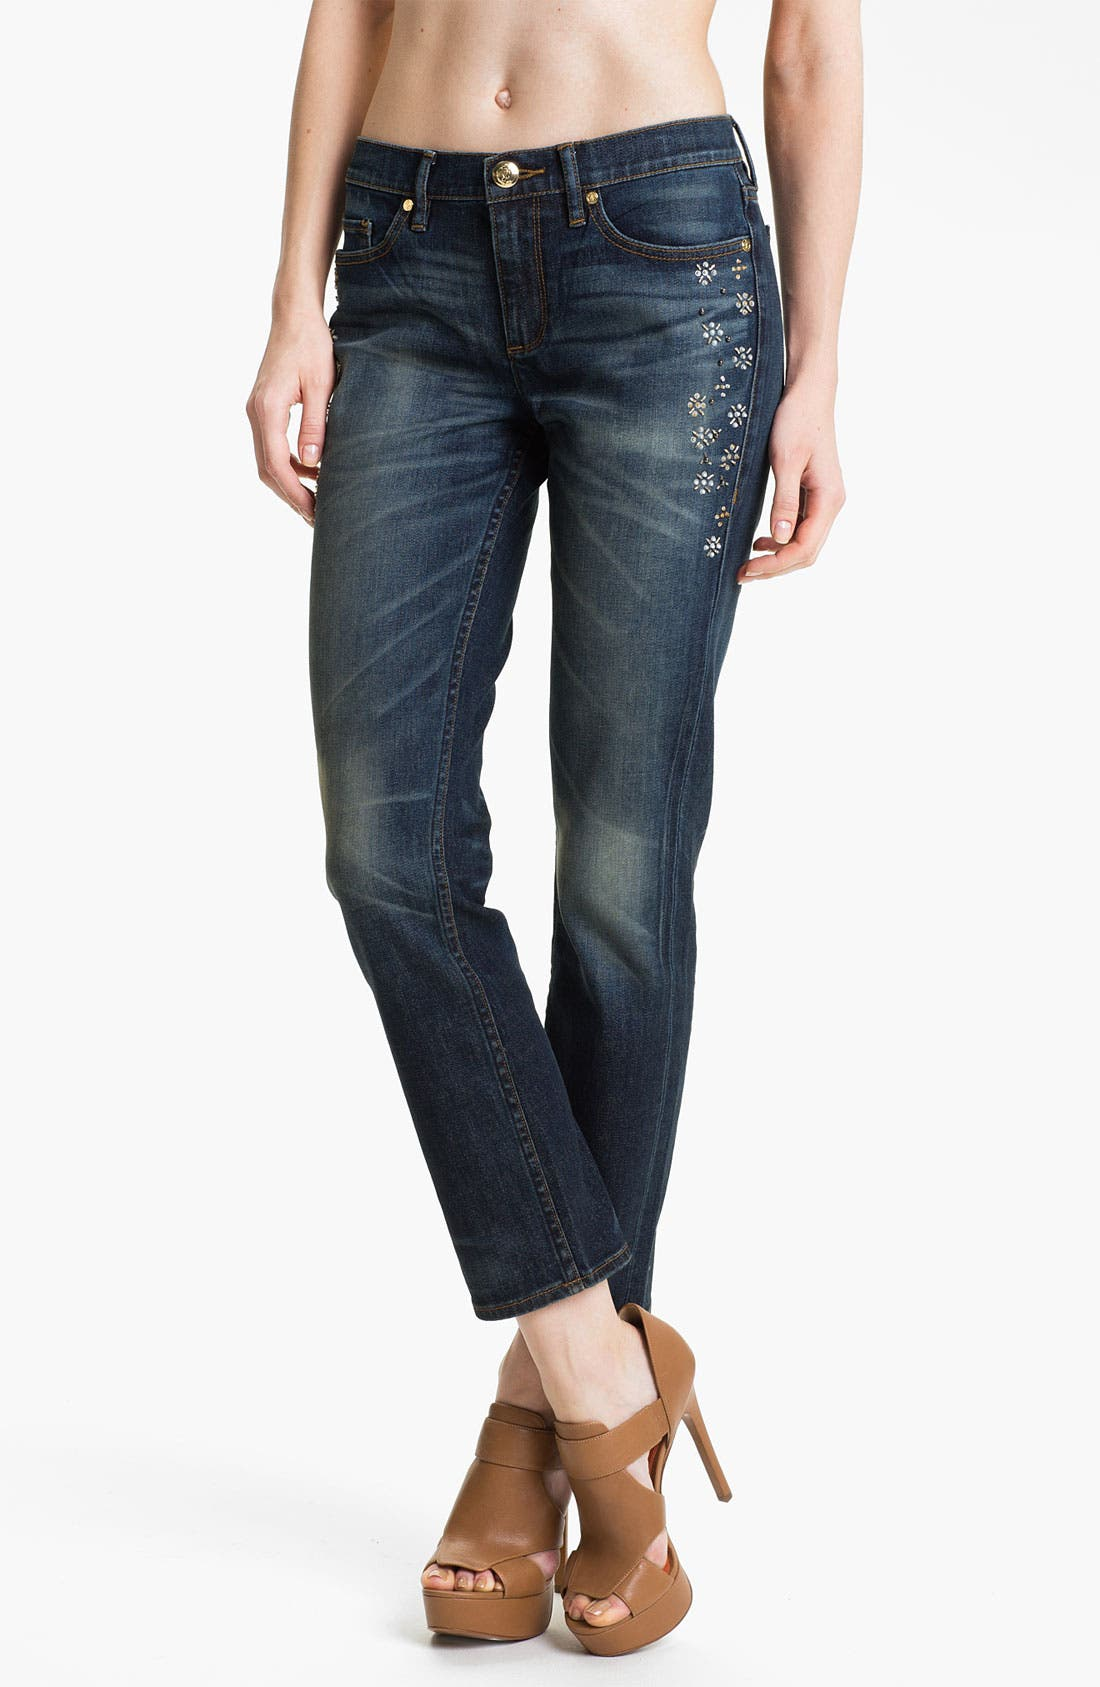 Main Image - Juicy Couture 'Straight Slouchy' Embellished Jeans (Bleeker)